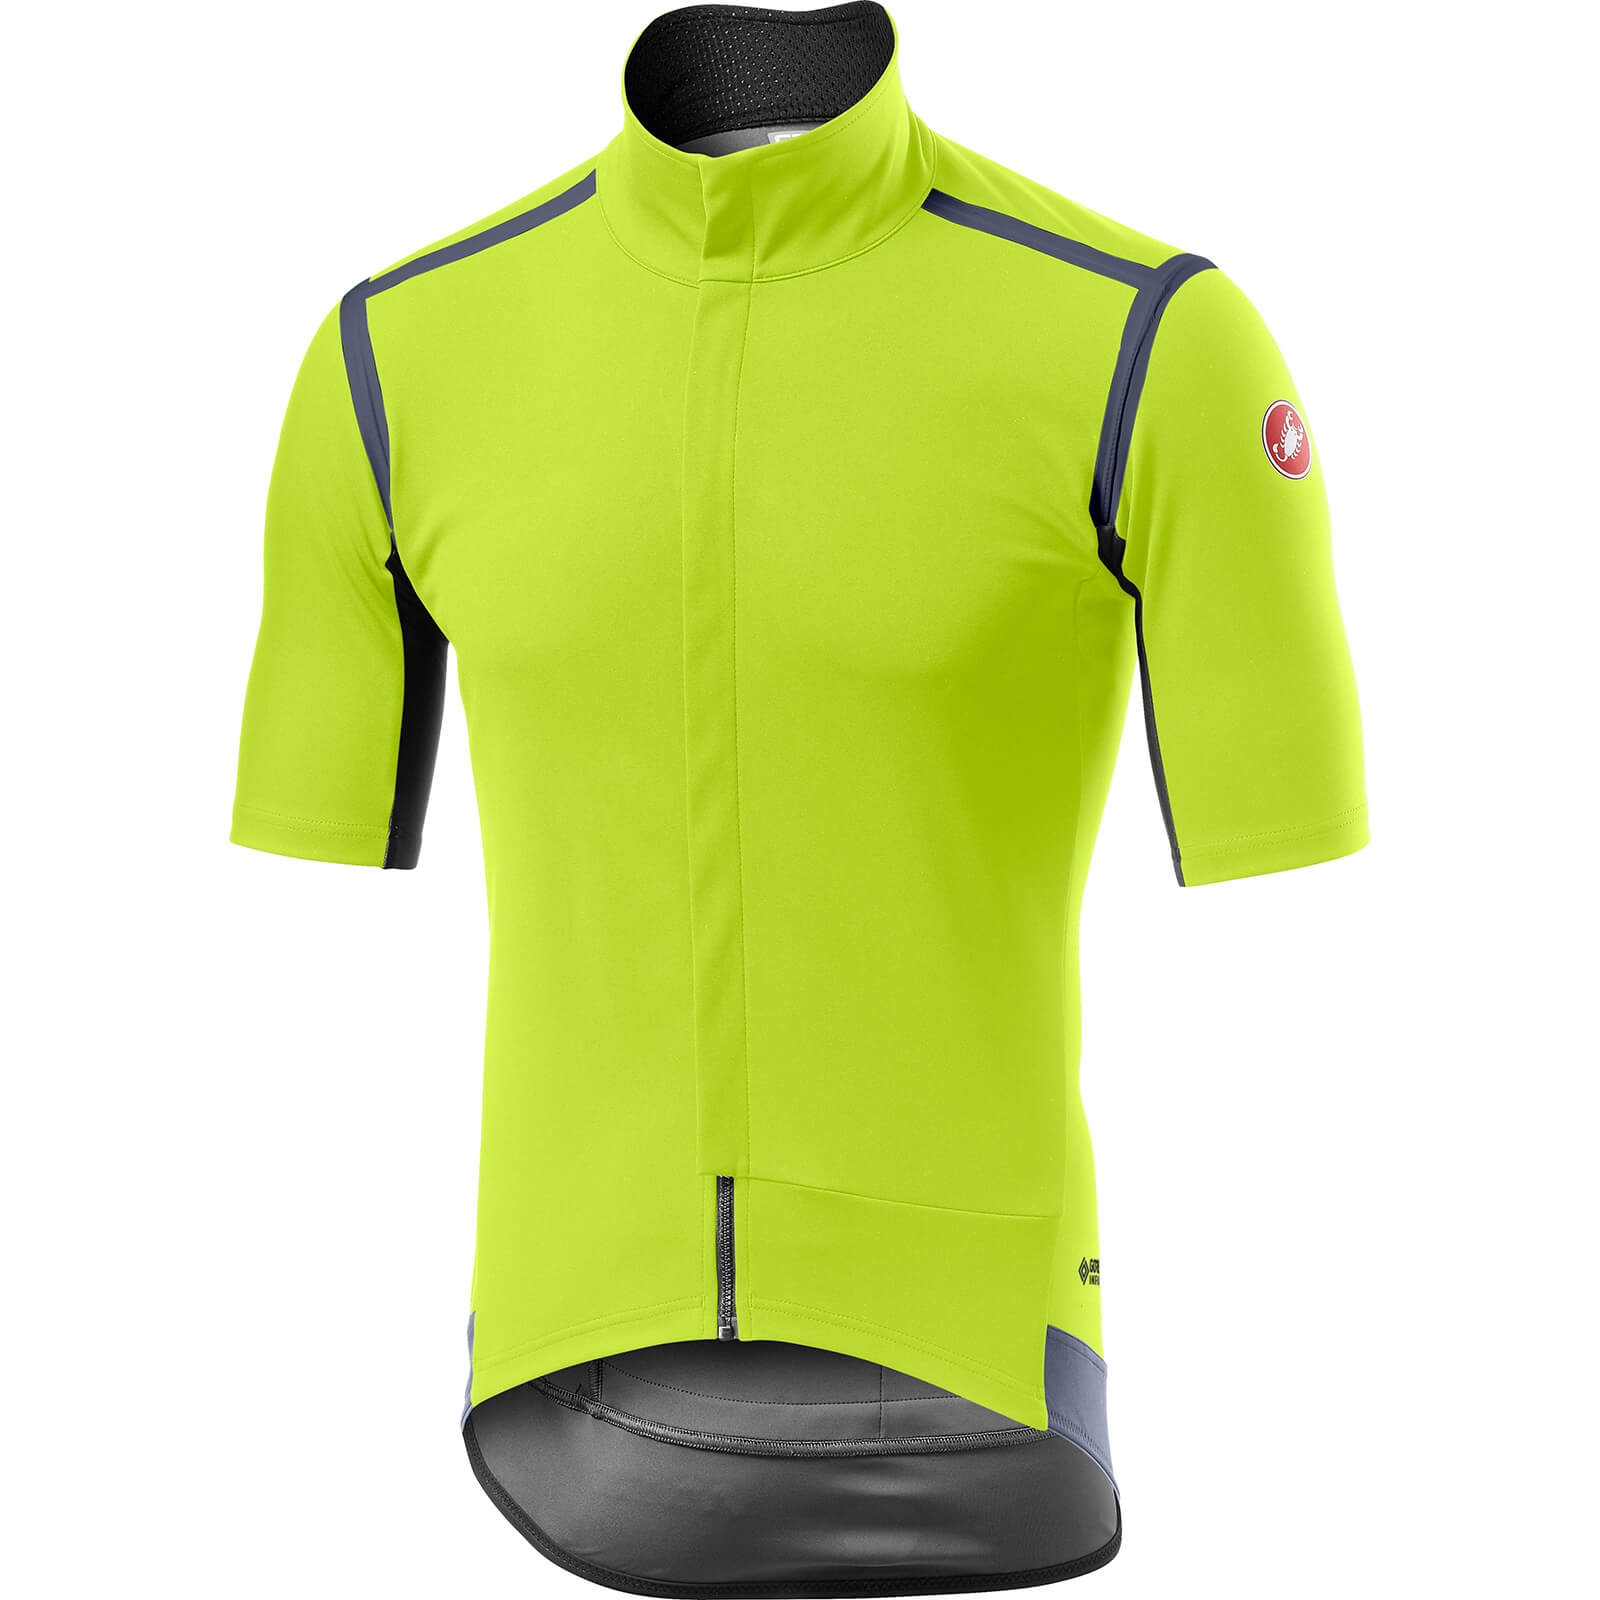 Image of Castelli Gabba RoS Jersey - S - Yellow Fluo